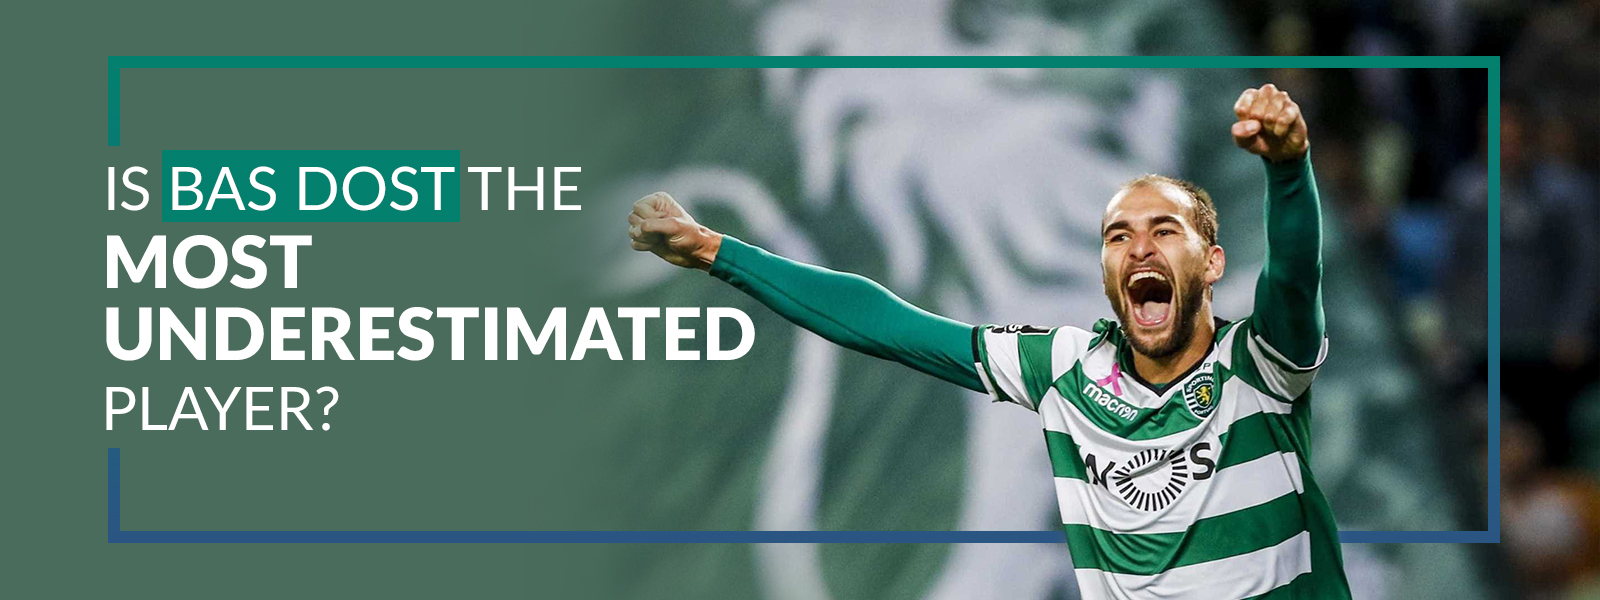 Is Bas Dost the Most Underestimated Player?